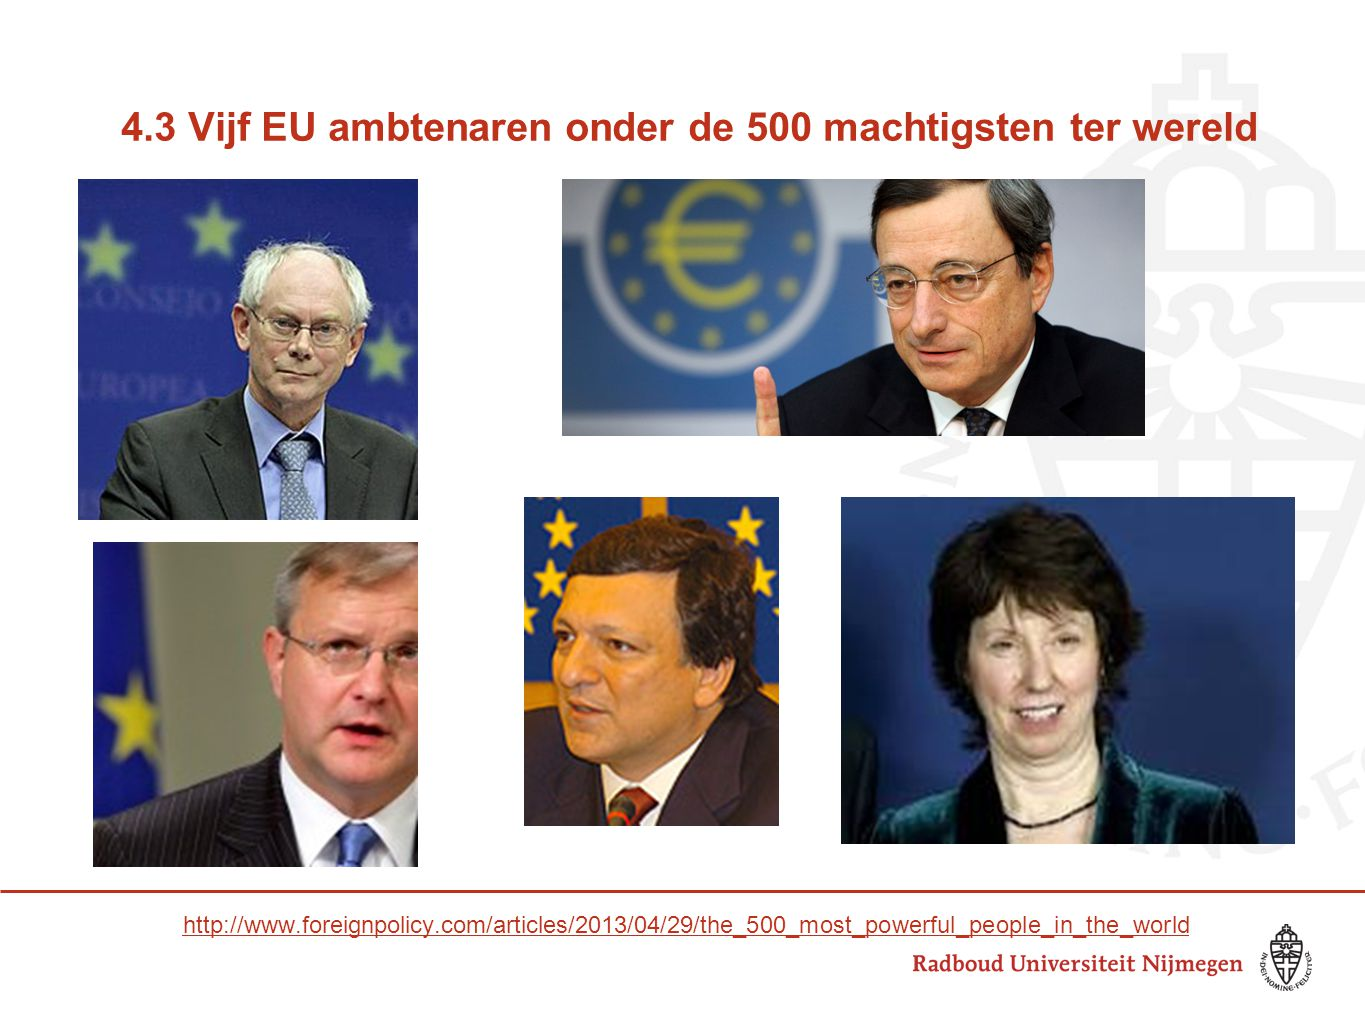 4.3 Vijf EU ambtenaren onder de 500 machtigsten ter wereld http://www.foreignpolicy.com/articles/2013/04/29/the_500_most_powerful_people_in_the_world